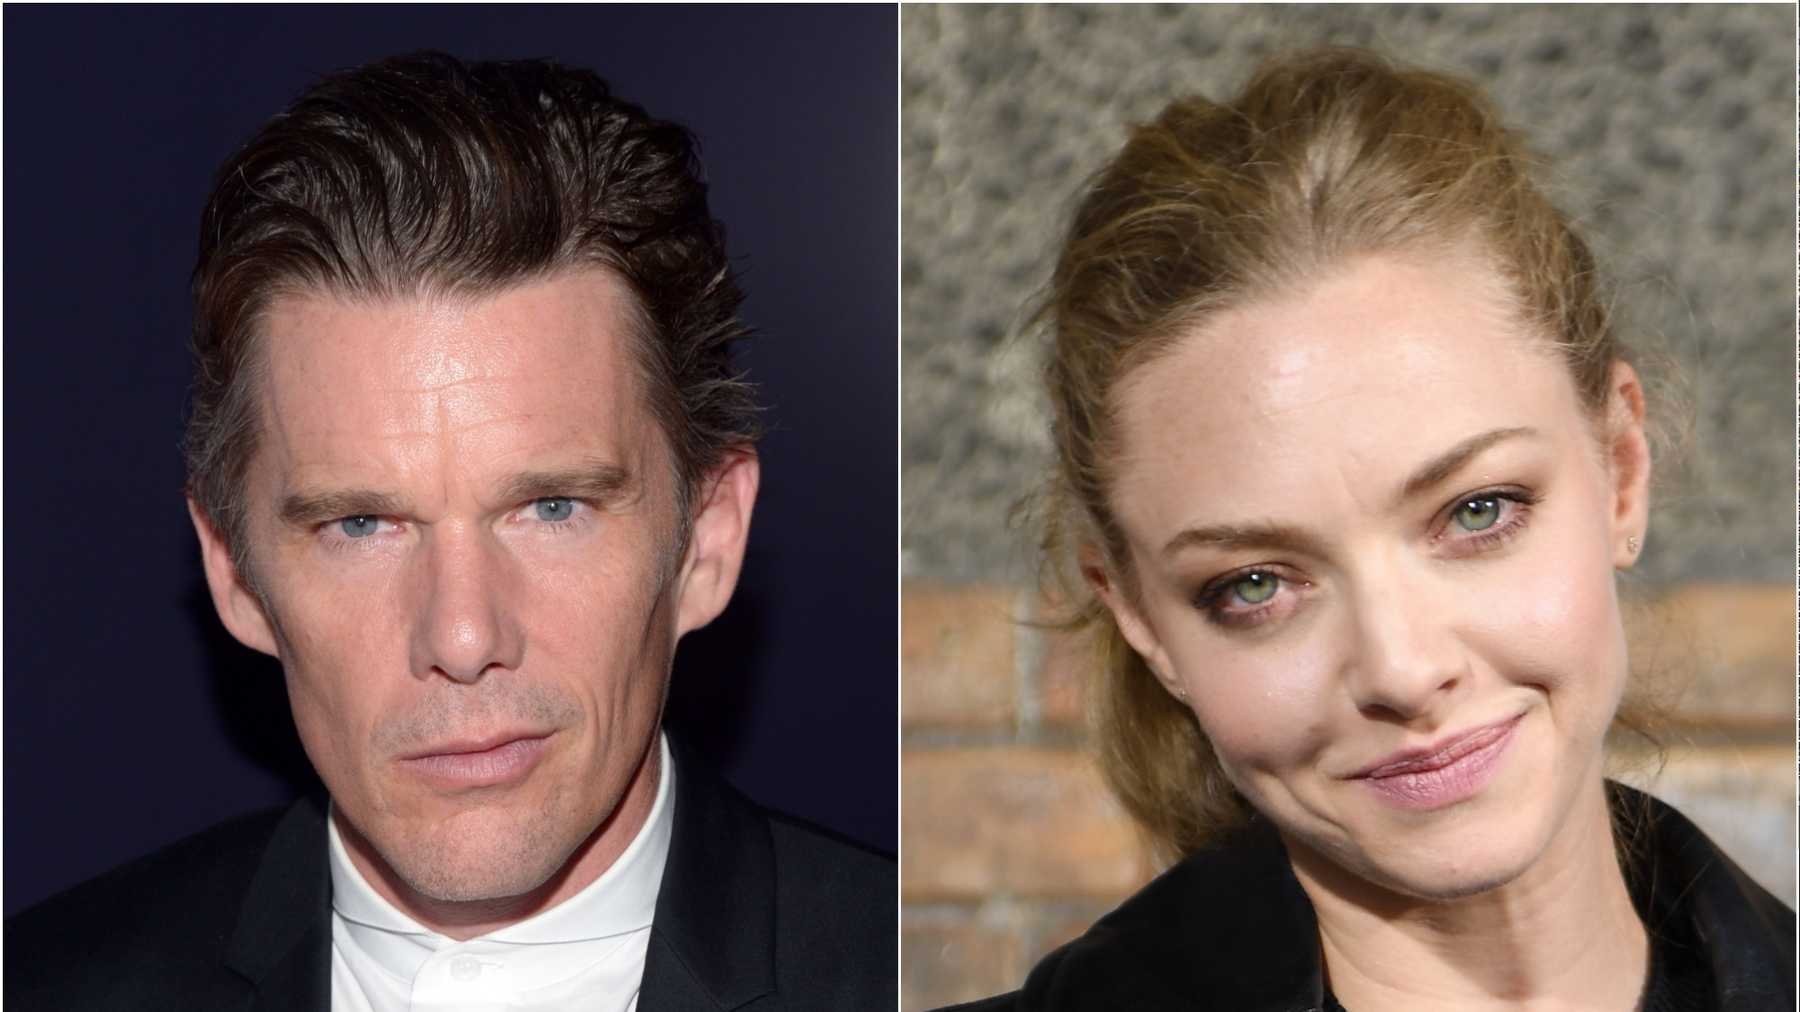 Amanda Seyfried Dr House ethan hawke and amanda seyfried on for paul schrader's first